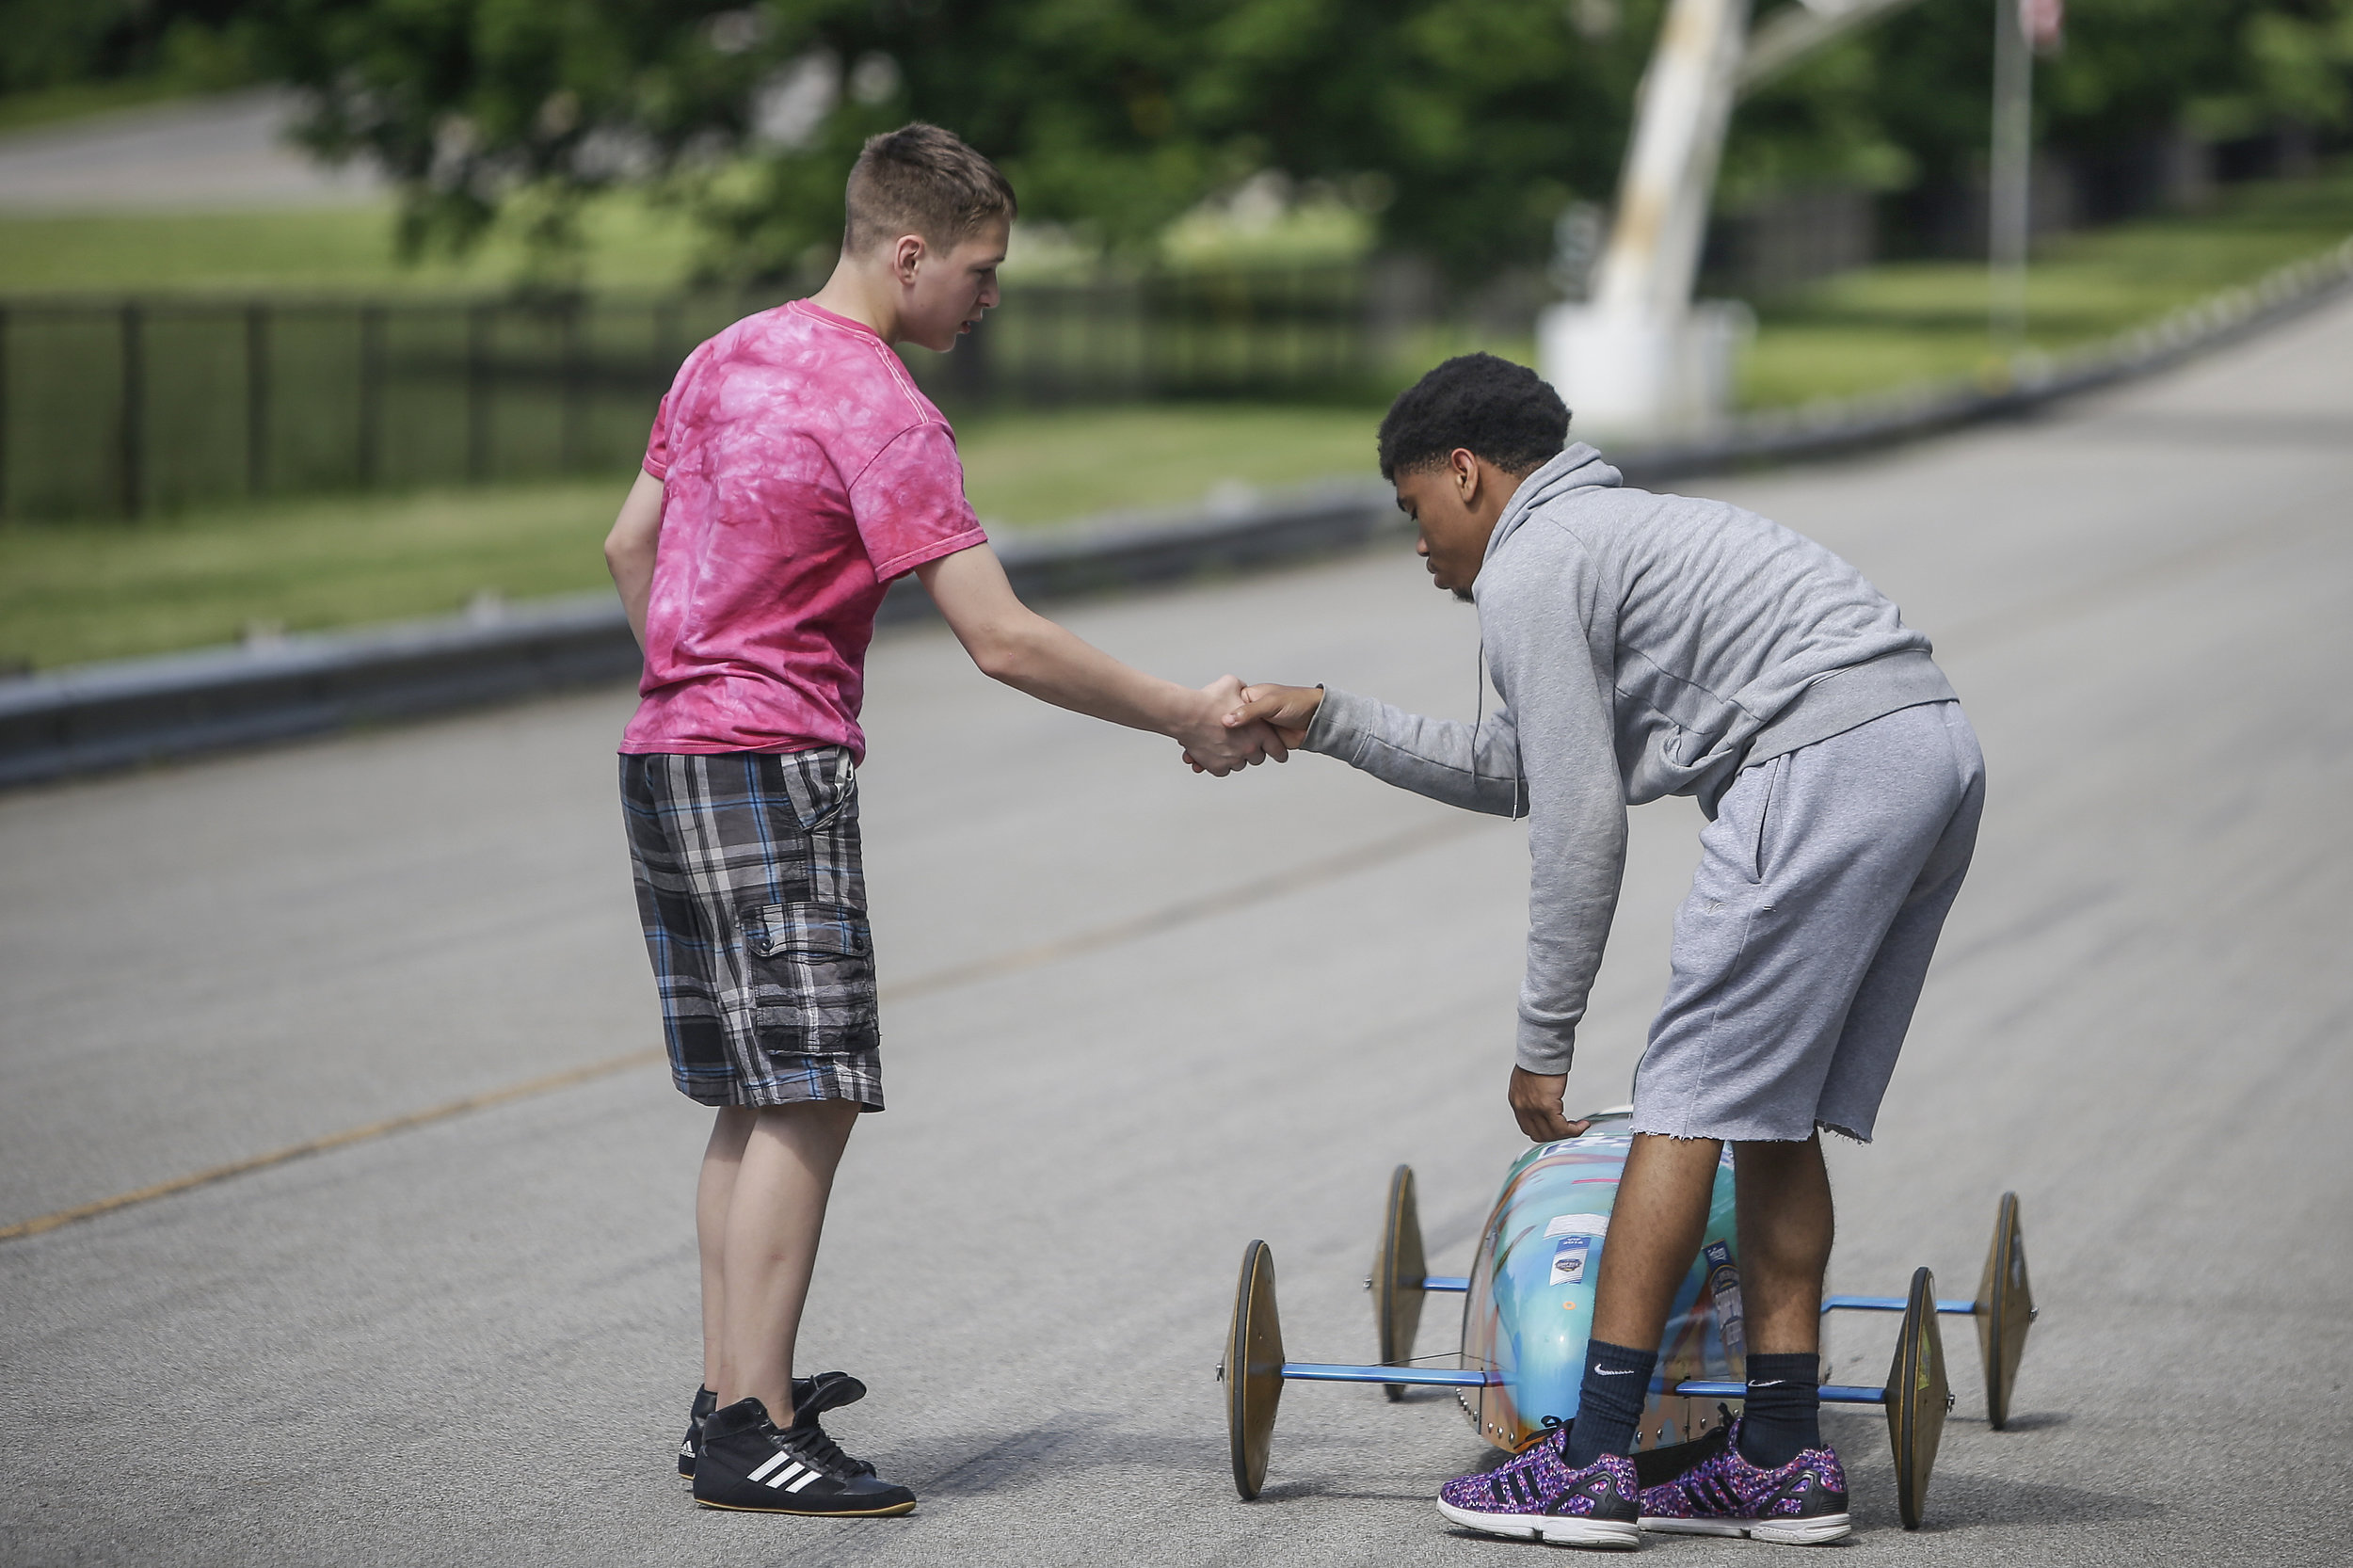 Joseph Flynn (left), 13, shakes his competitor, Geordan Wells', 16, hand after their race at the 15th Annual Mayor's Cup on Saturday, June 3, 2017.